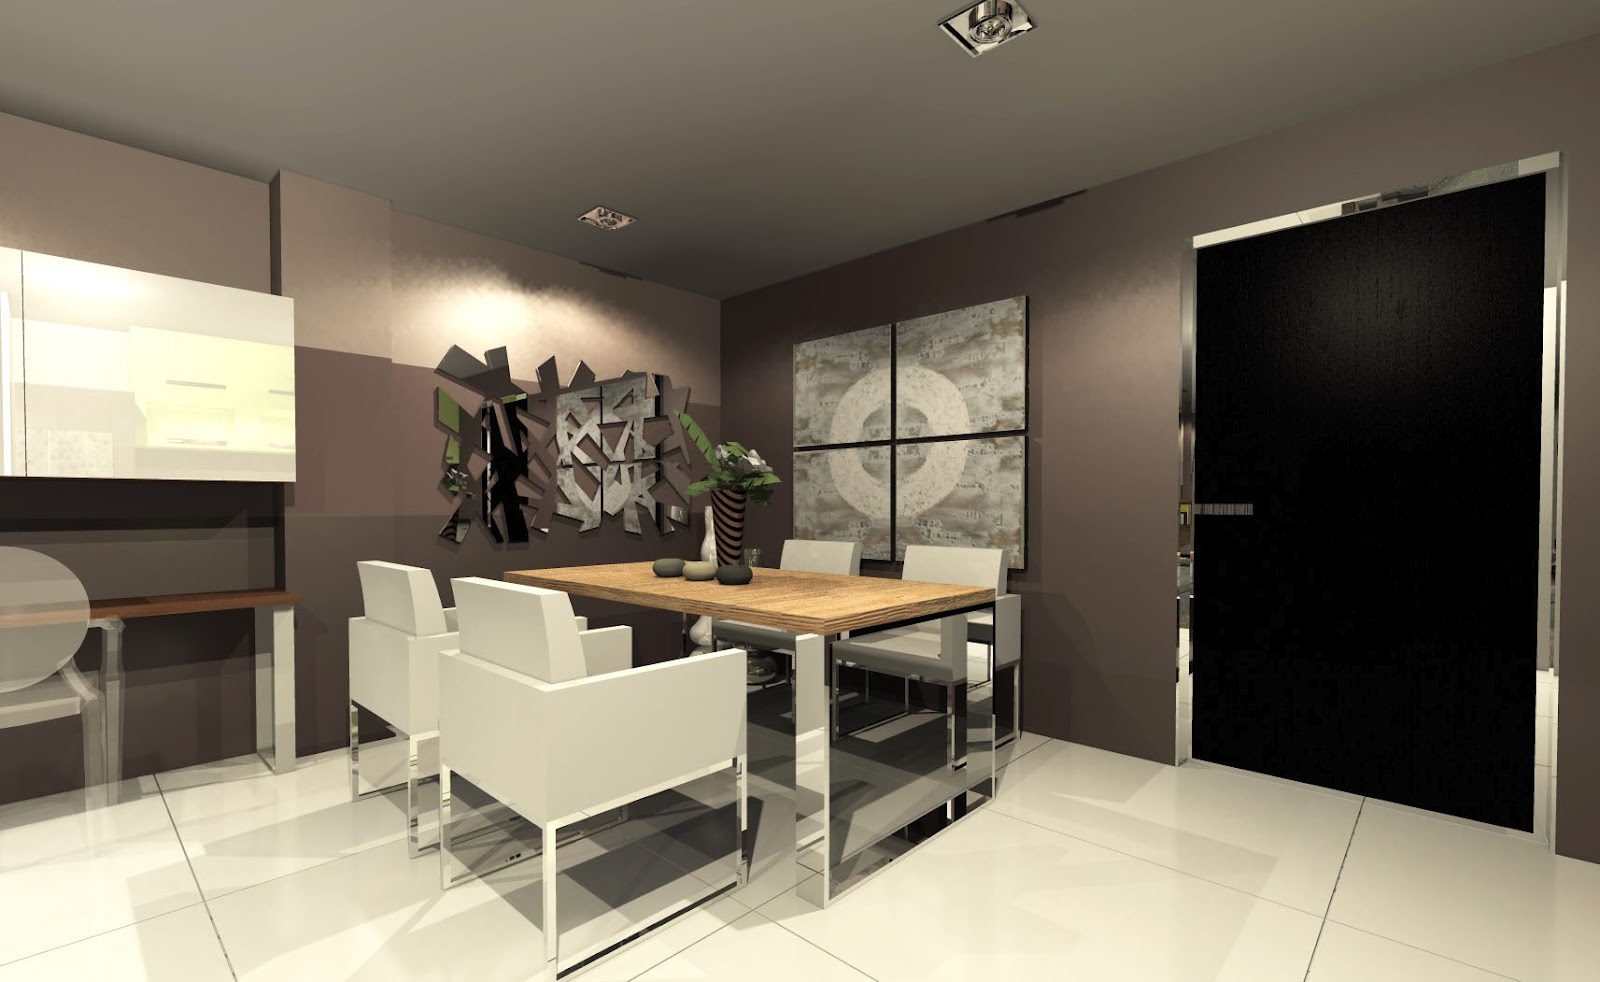 architecte d 39 interieur montpellier am nagement condiminium bangkok. Black Bedroom Furniture Sets. Home Design Ideas